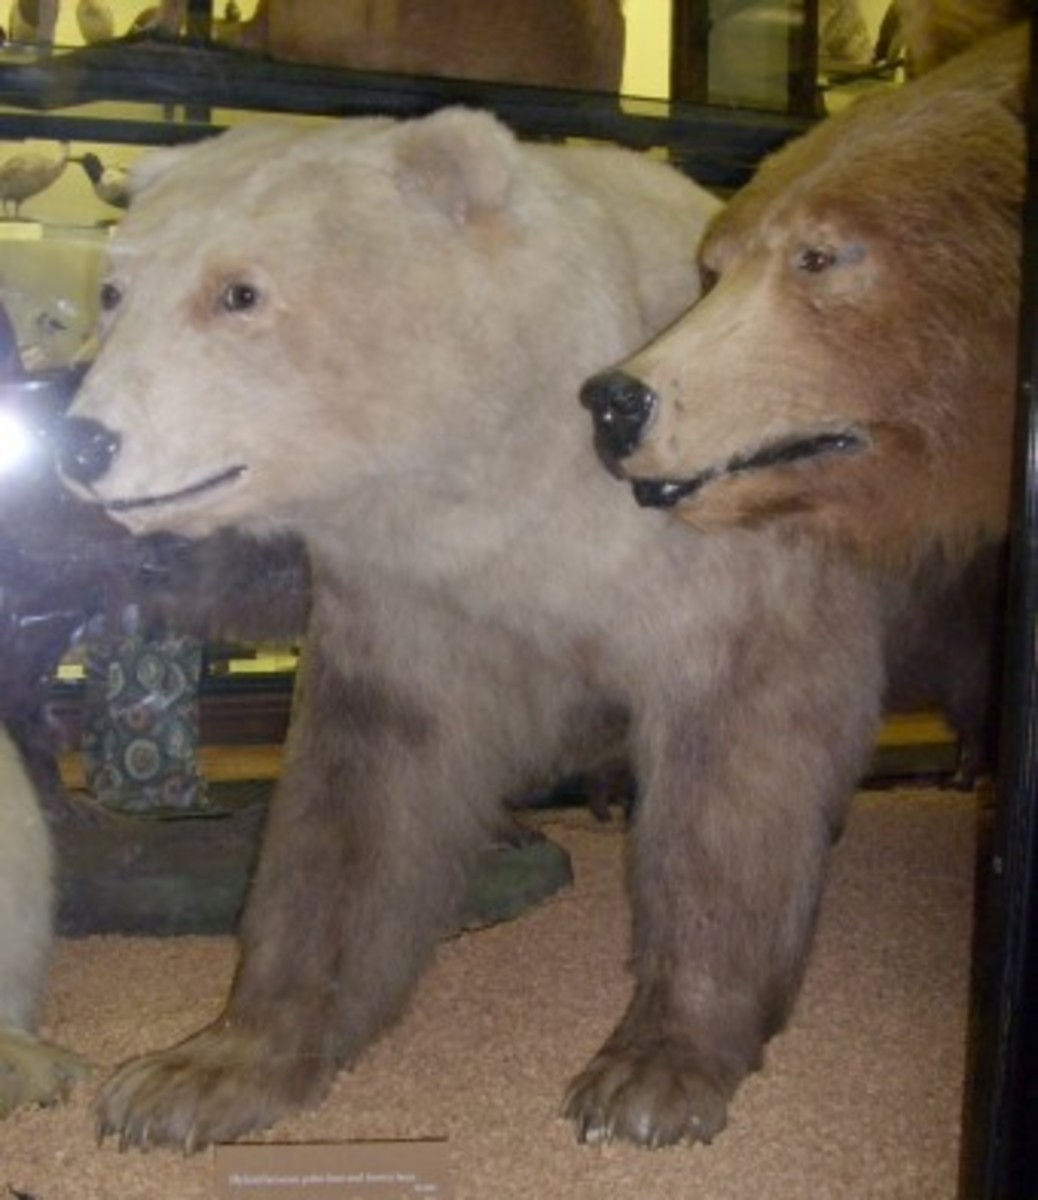 Polar/brown bear hybrid on display at the Natural History Museum at Tring in the United Kingdom. (Photo: Sarah Hartwell/Wikimedia Commons)